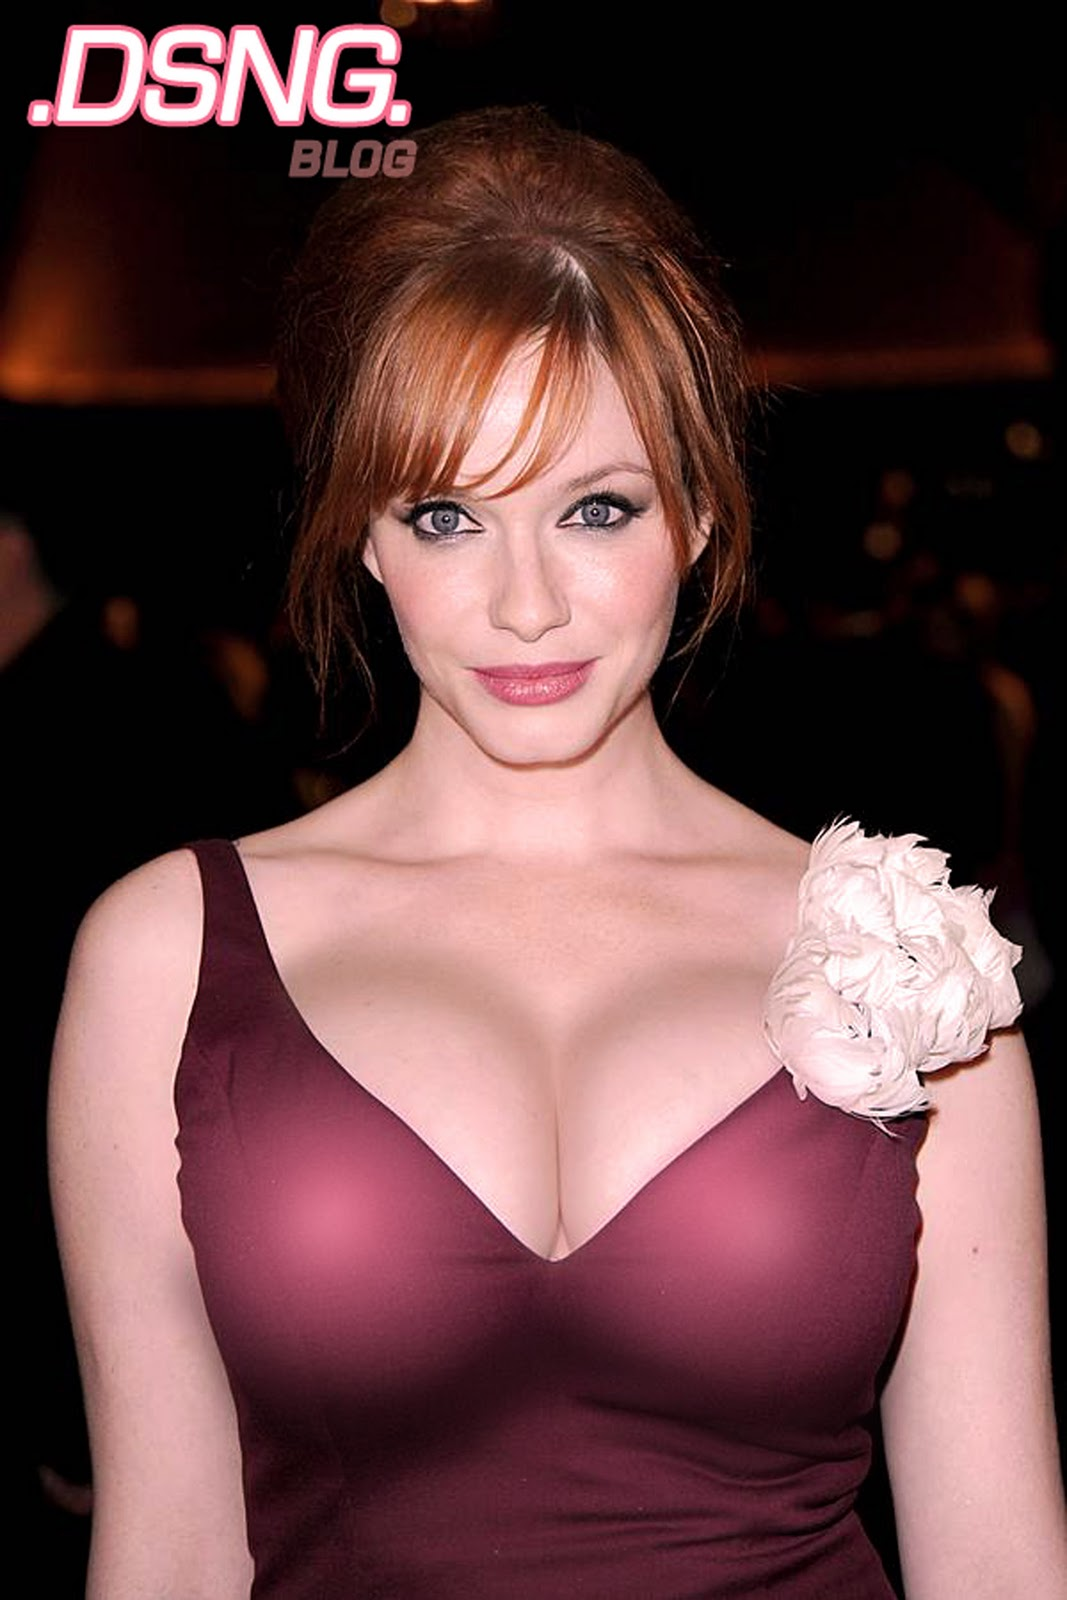 http://1.bp.blogspot.com/-qLRWdWy_6qA/TvgAWjp9vFI/AAAAAAAACzU/2KWa6CFFRE0/s1600/christina+hendricks+hollywood+actress+big+tits+breasts+boobs+jugs+pawg+whooty+redhead+red+head+sexy+maroon+mahonagny+gown+dress+2+33.jpg